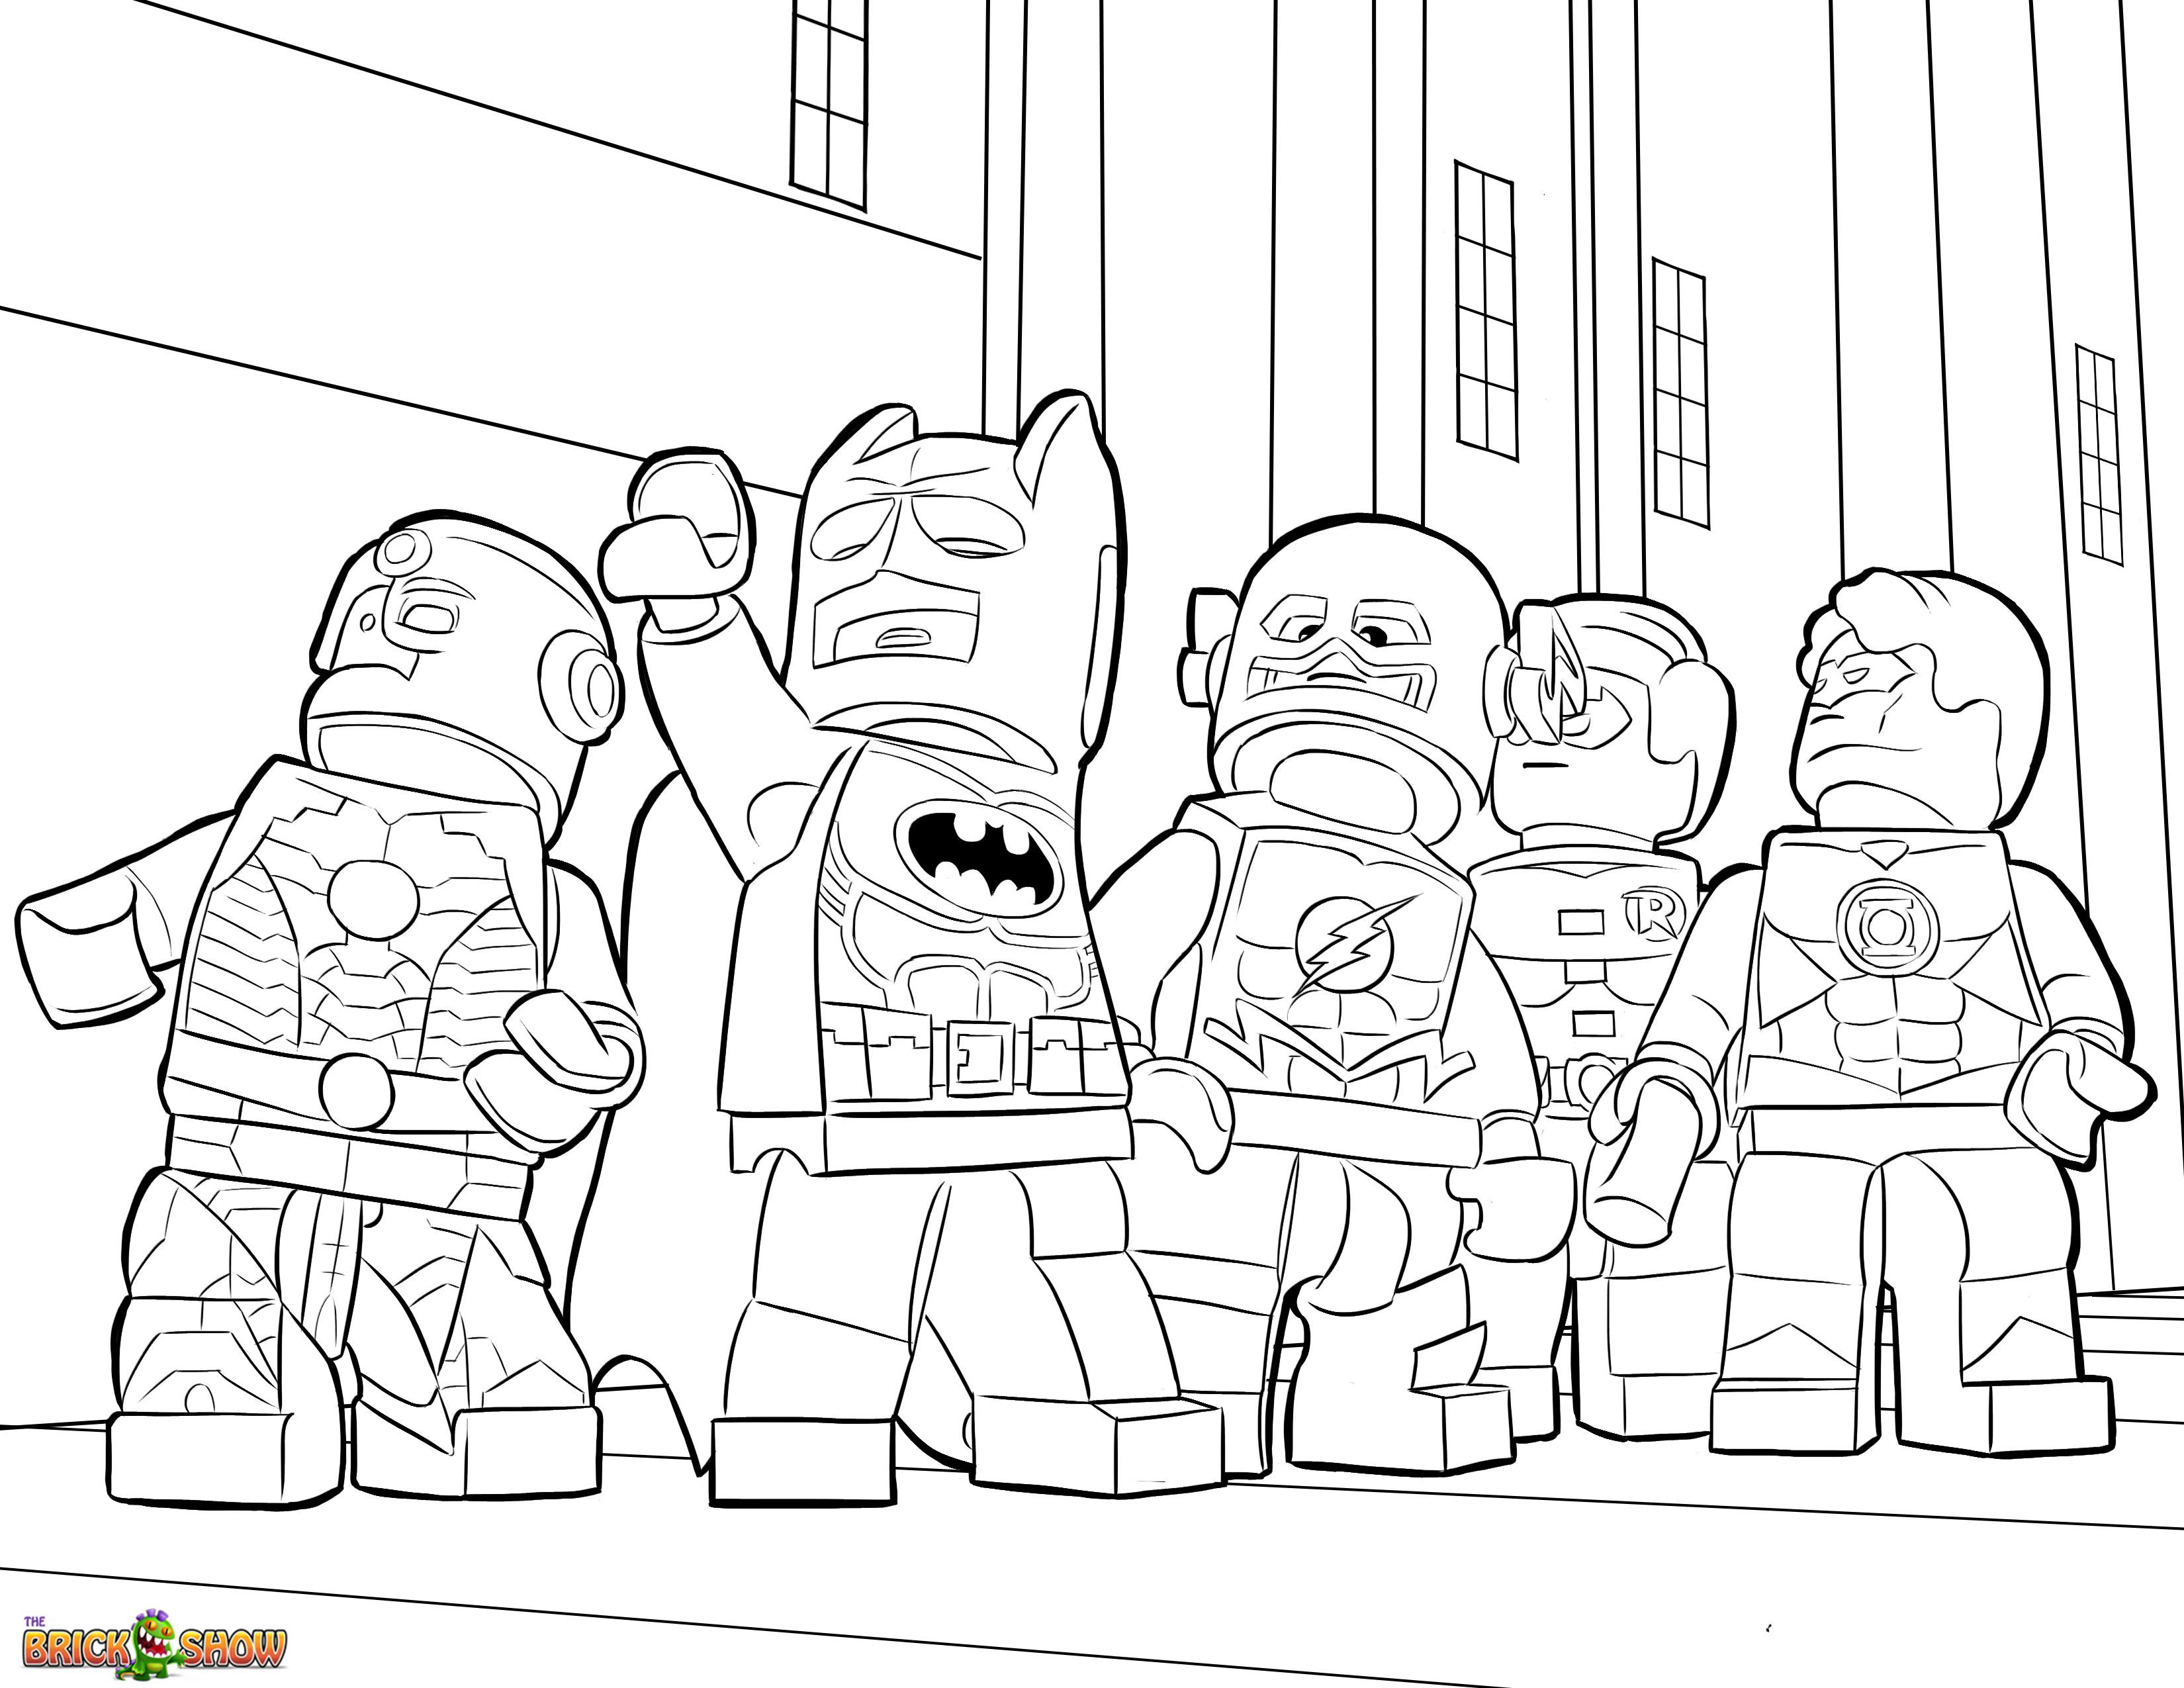 3300x2550 Batman Lego Coloring Pages Kids N Fun Com Of Movie